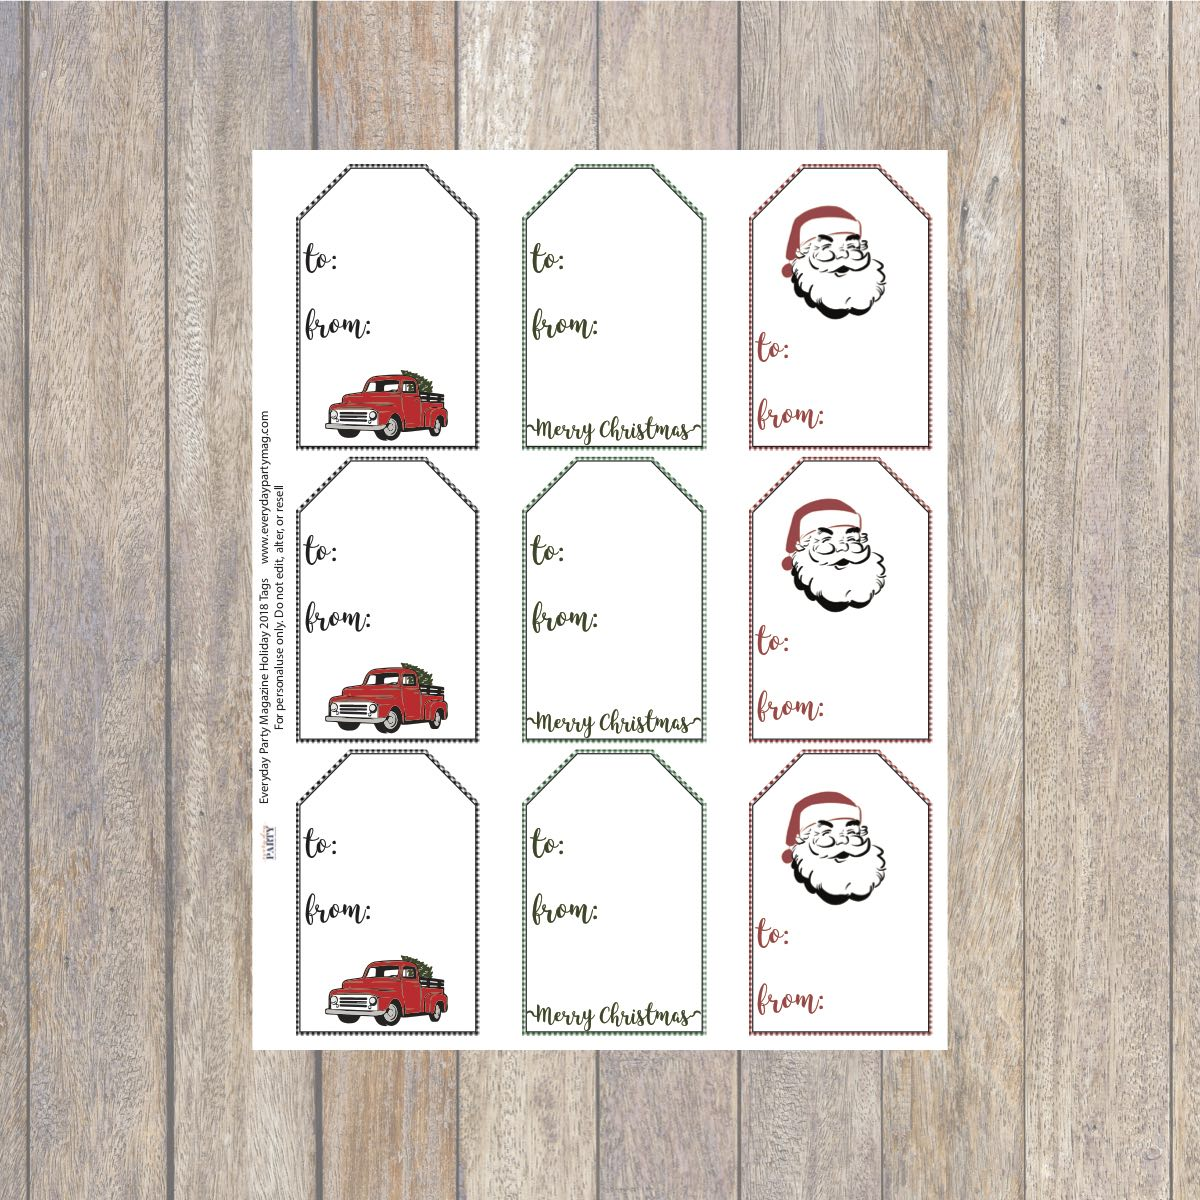 photograph relating to Printable Holiday Tags named Farmhouse Printable Trip Present Tags - Daily Celebration Journal